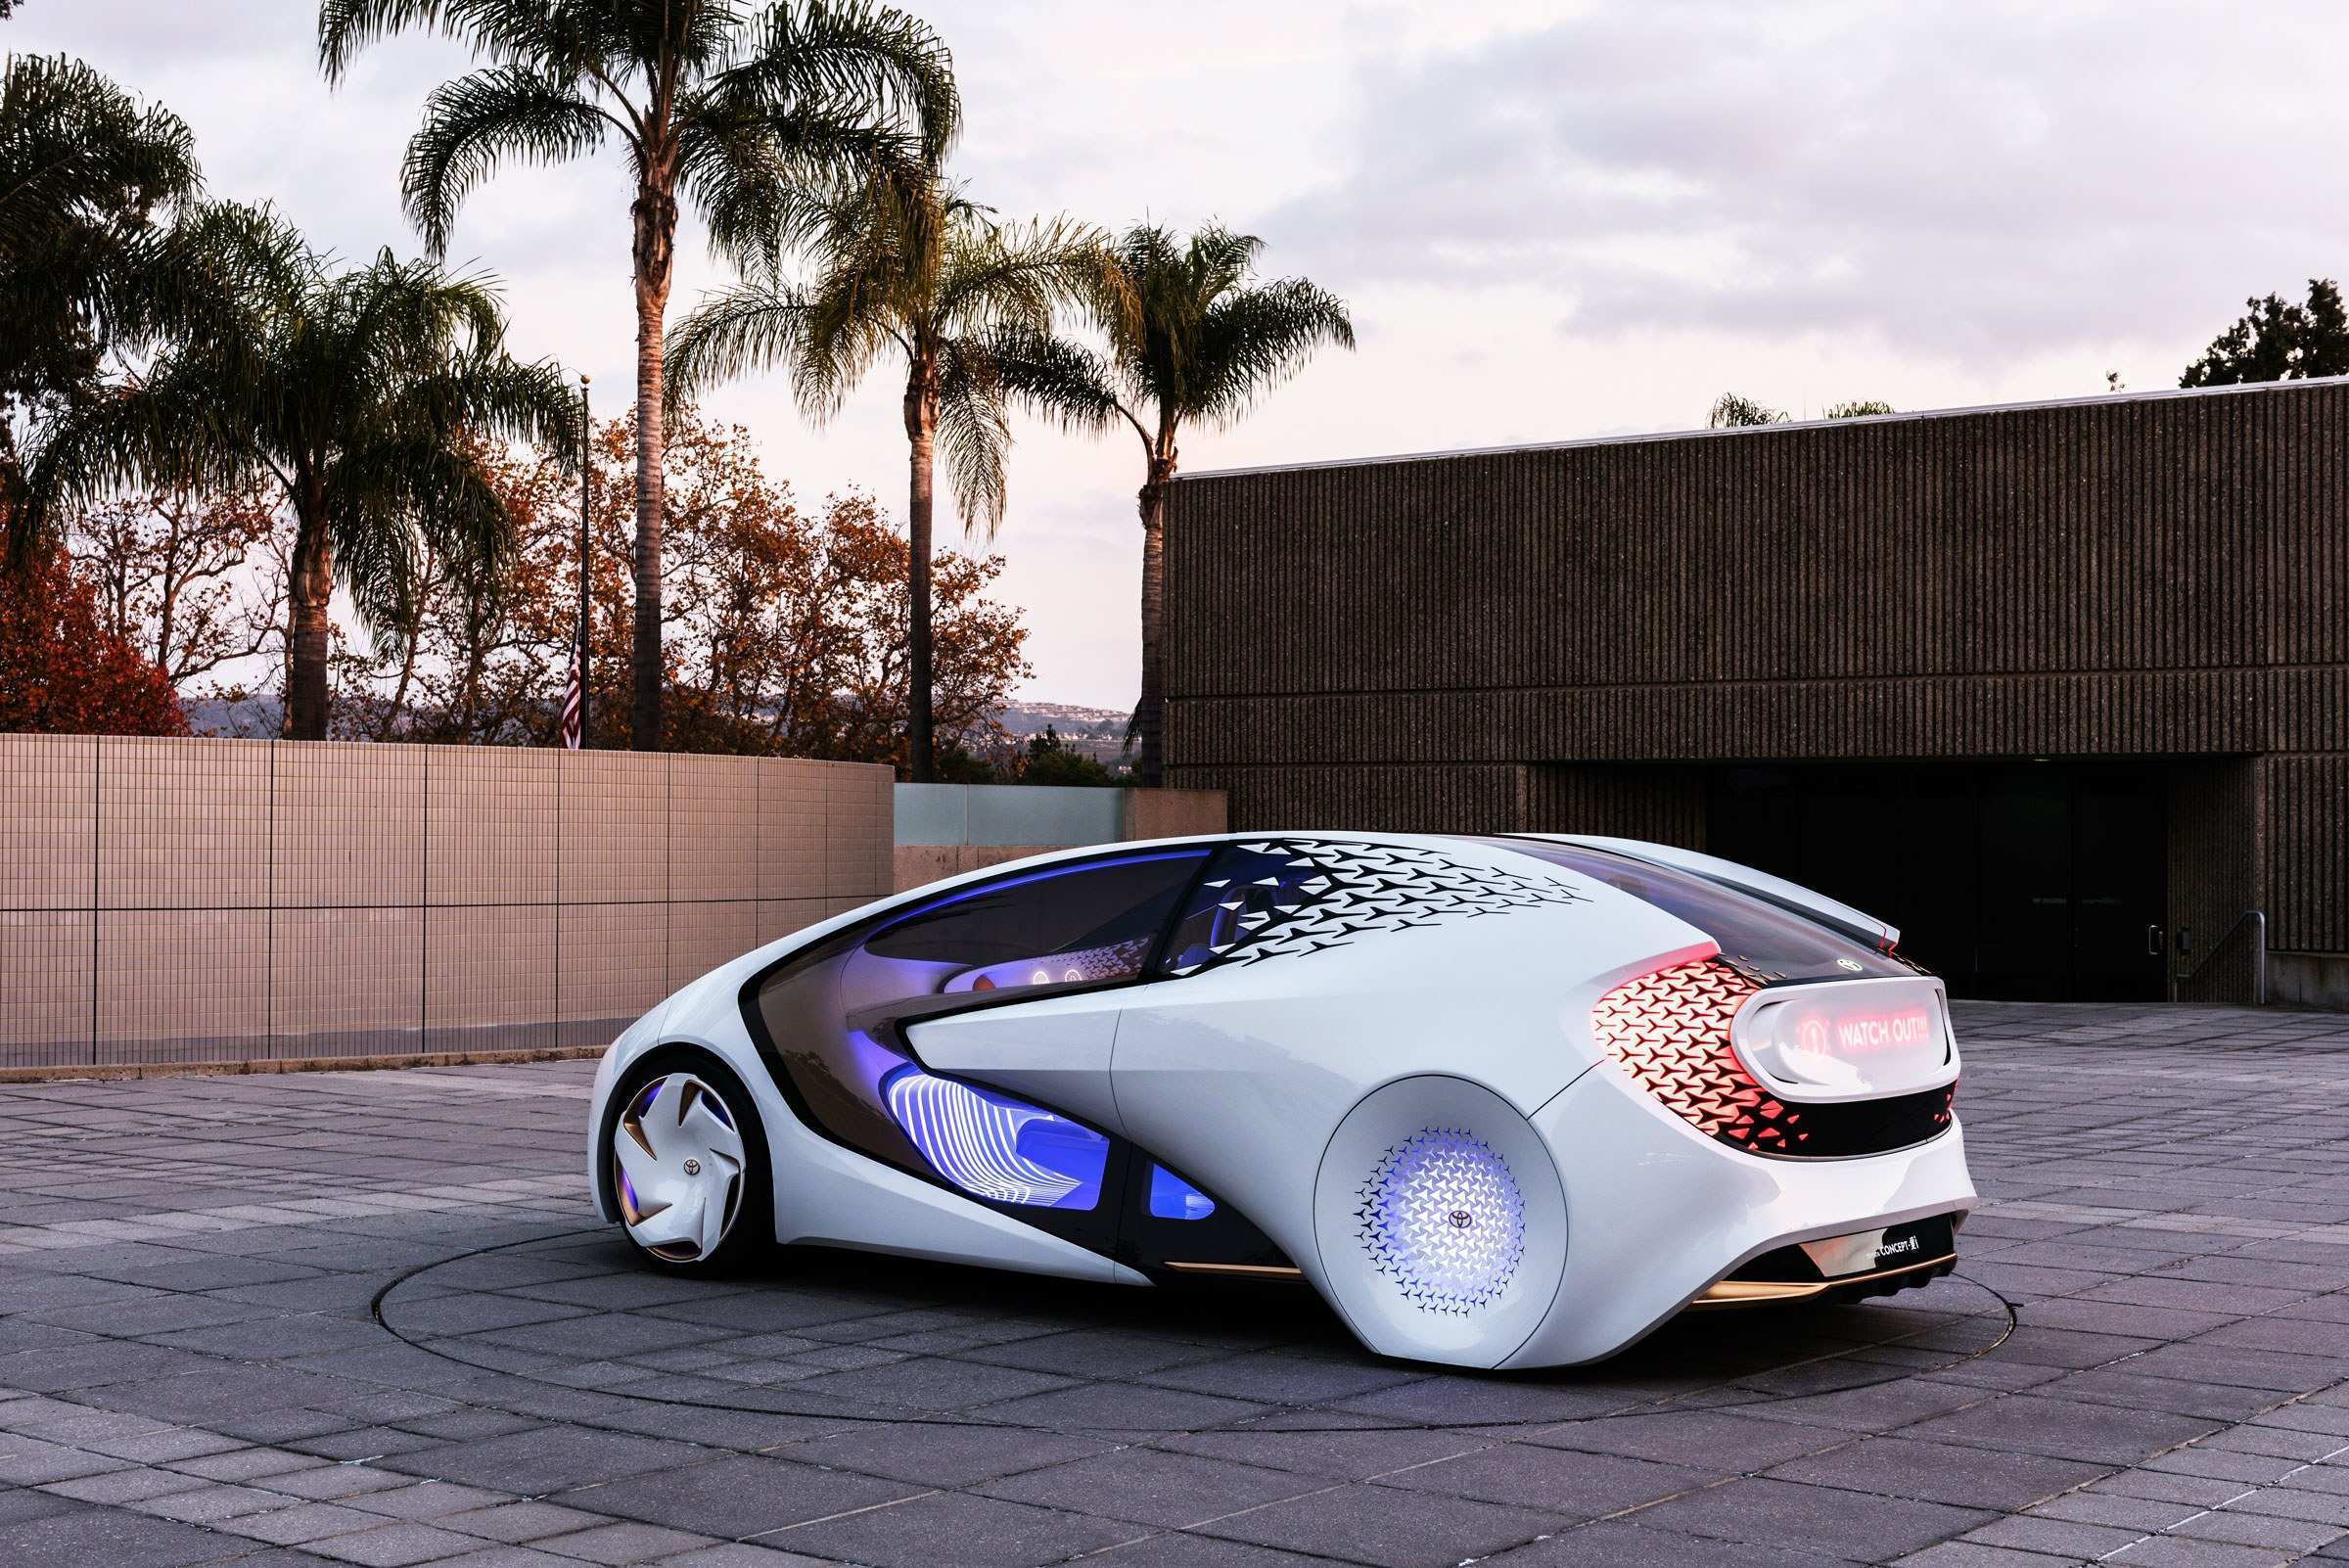 76 Gallery of Toyota 2020 Vision Price with Toyota 2020 Vision